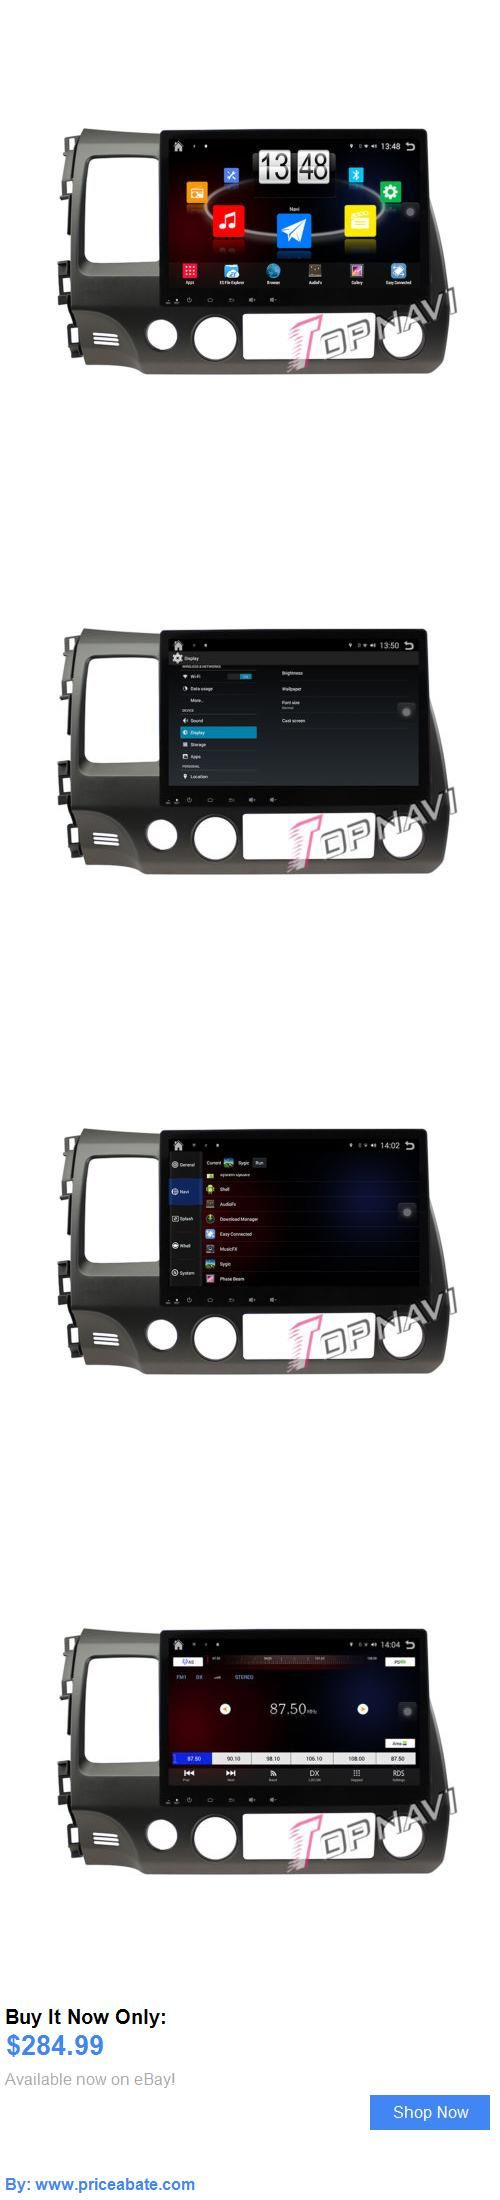 Car Audio Video And GPS: 10.1 Android 4.4 Car Gps Stereo Navi Video Audio For Honda Civic (2006-2011) BUY IT NOW ONLY: $284.99 #priceabateCarAudioVideoAndGPS OR #priceabate